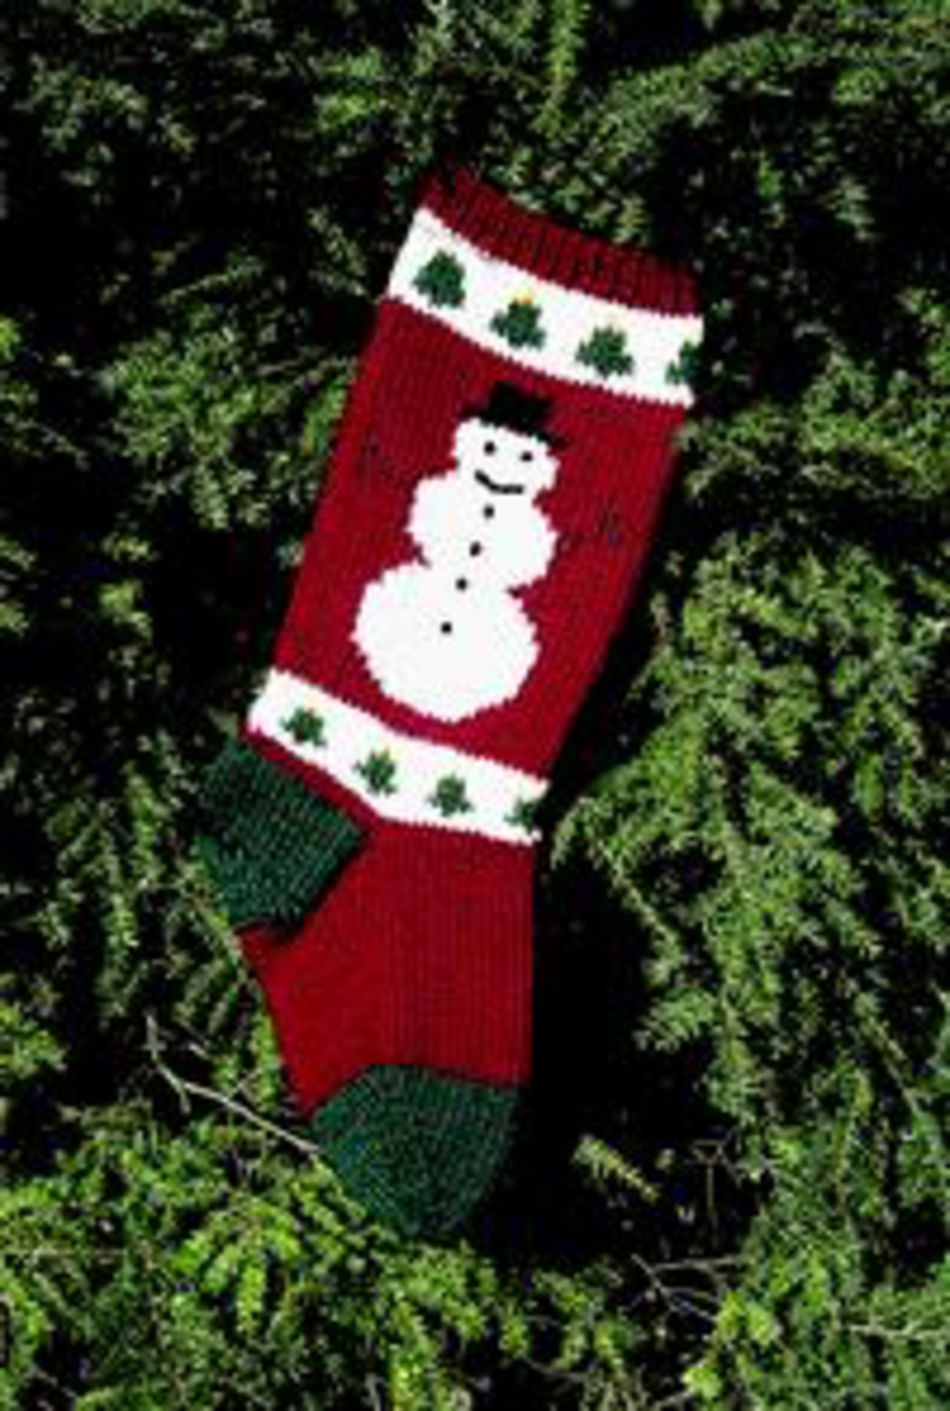 Snowman Christmas Stocking Kit, Knitting Kit - Halcyon Yarn